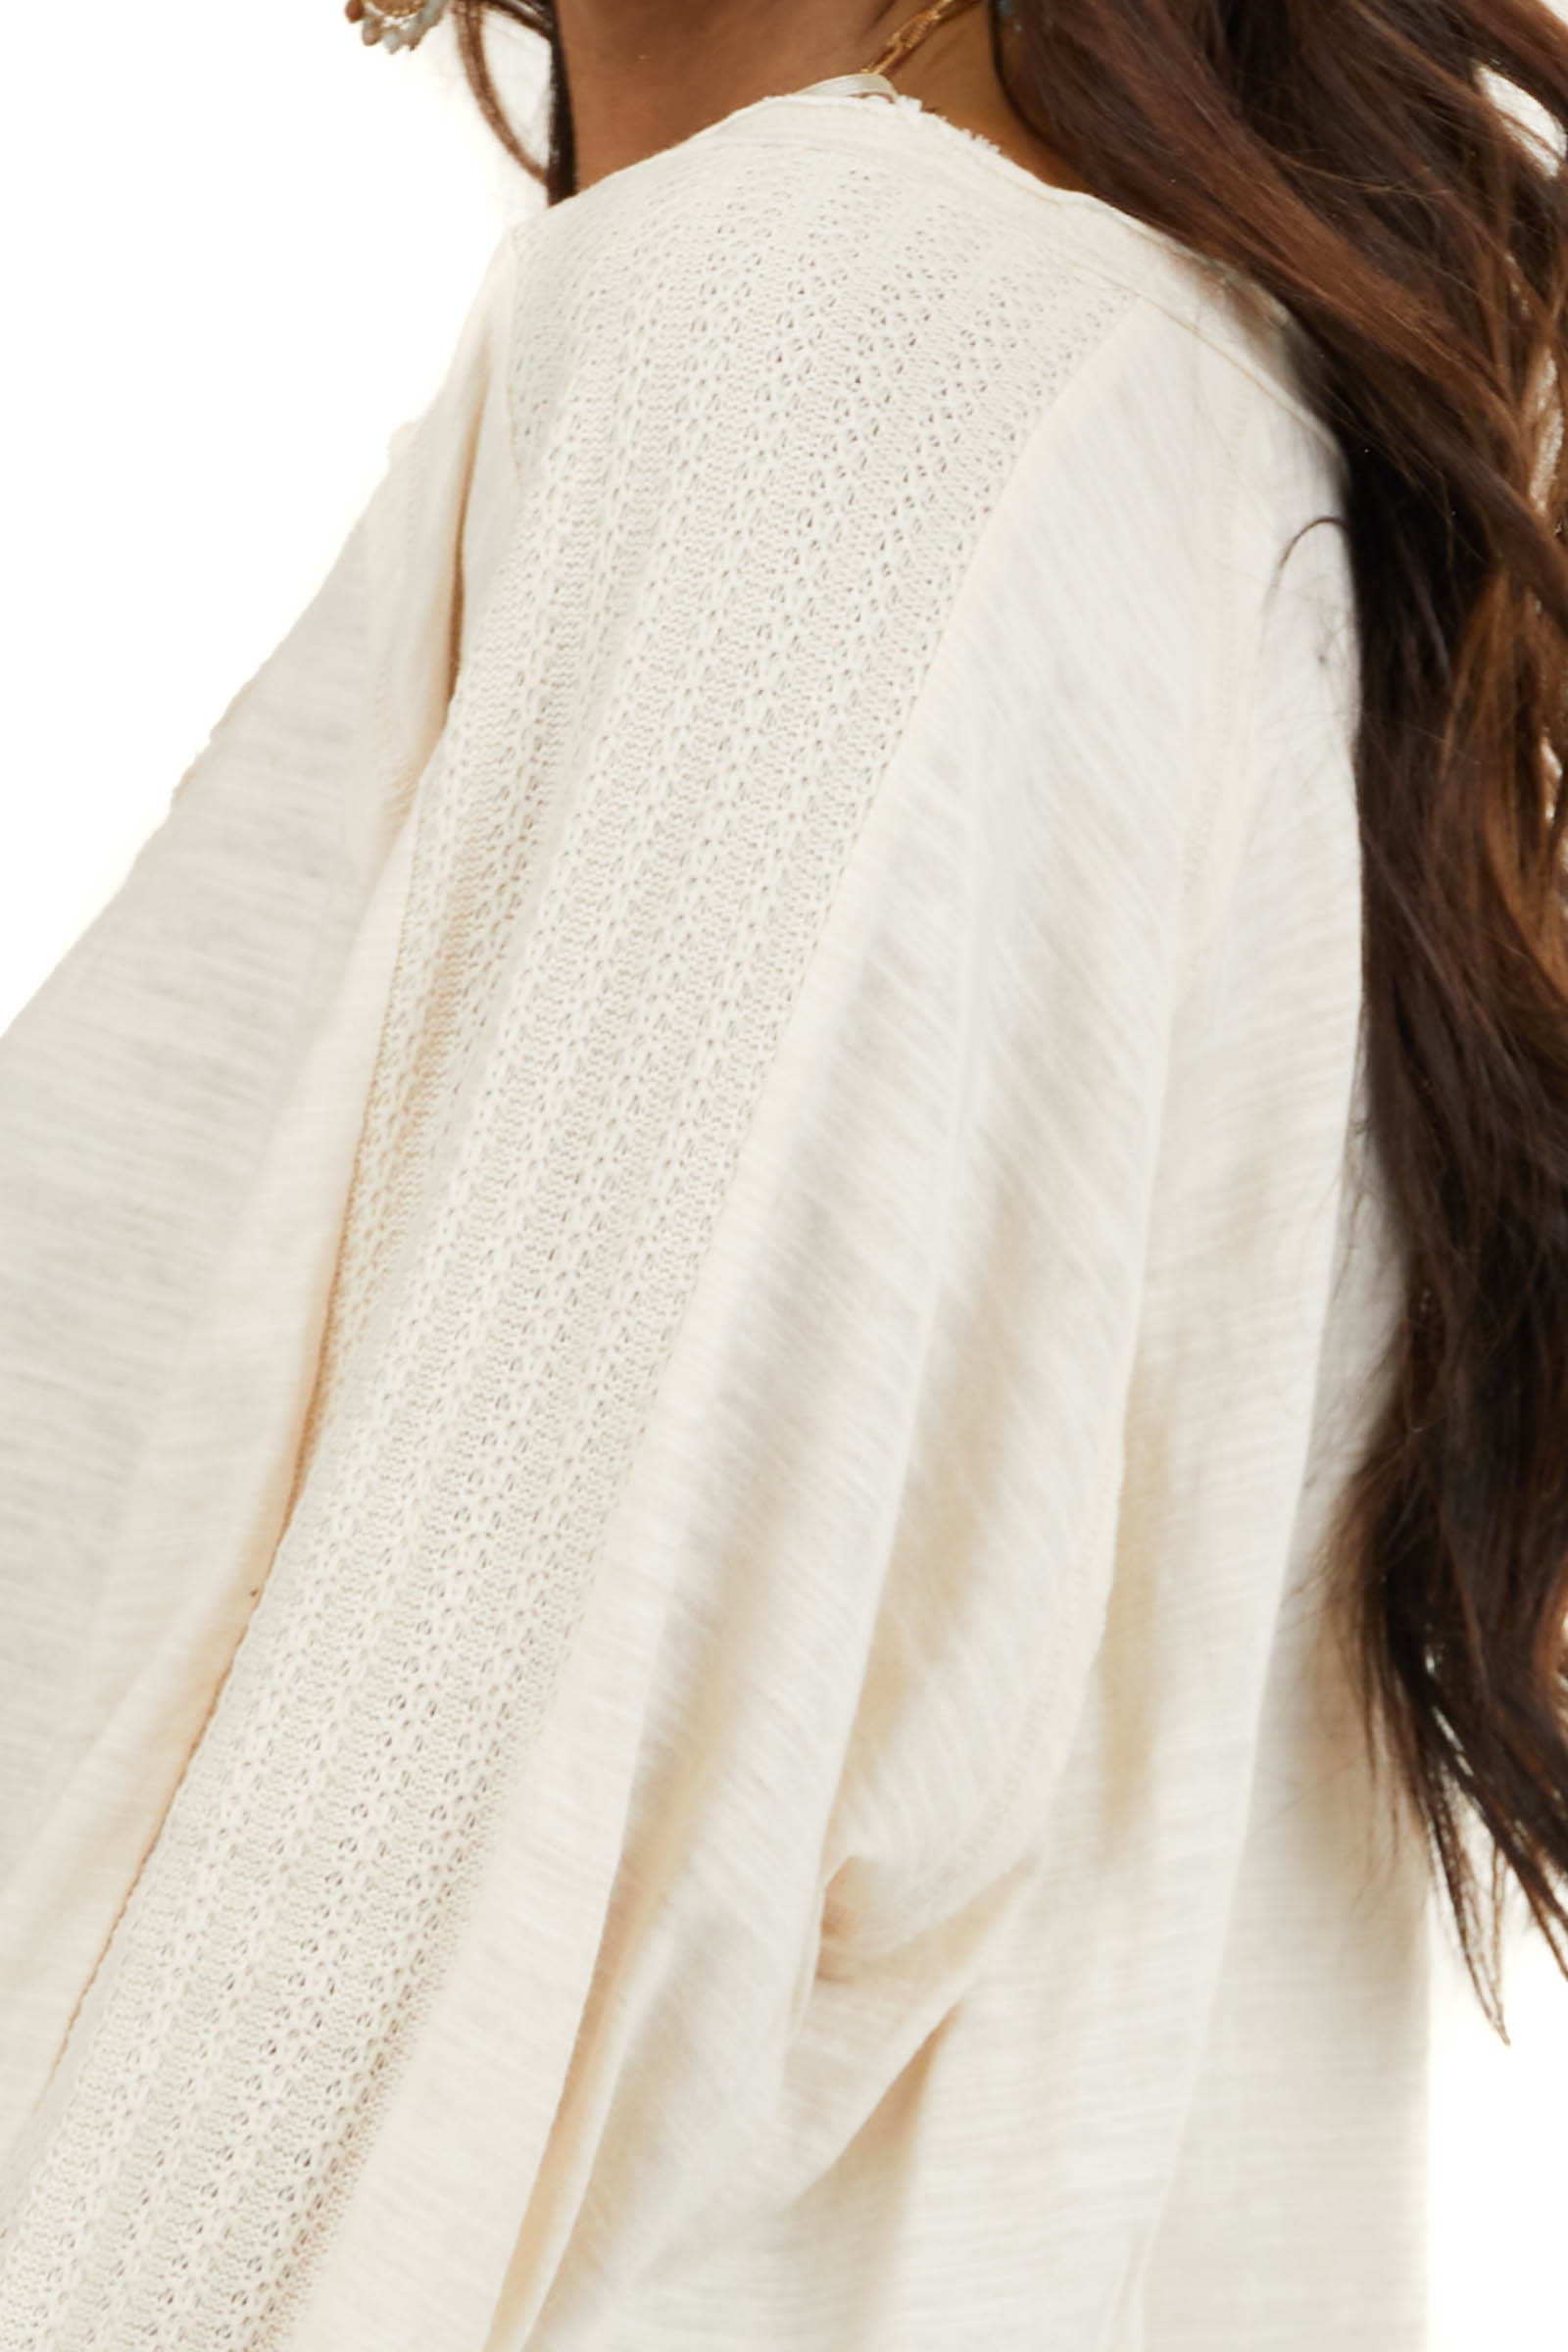 Heathered Cream Knit Top with Contrast Knit Bubble Sleeves